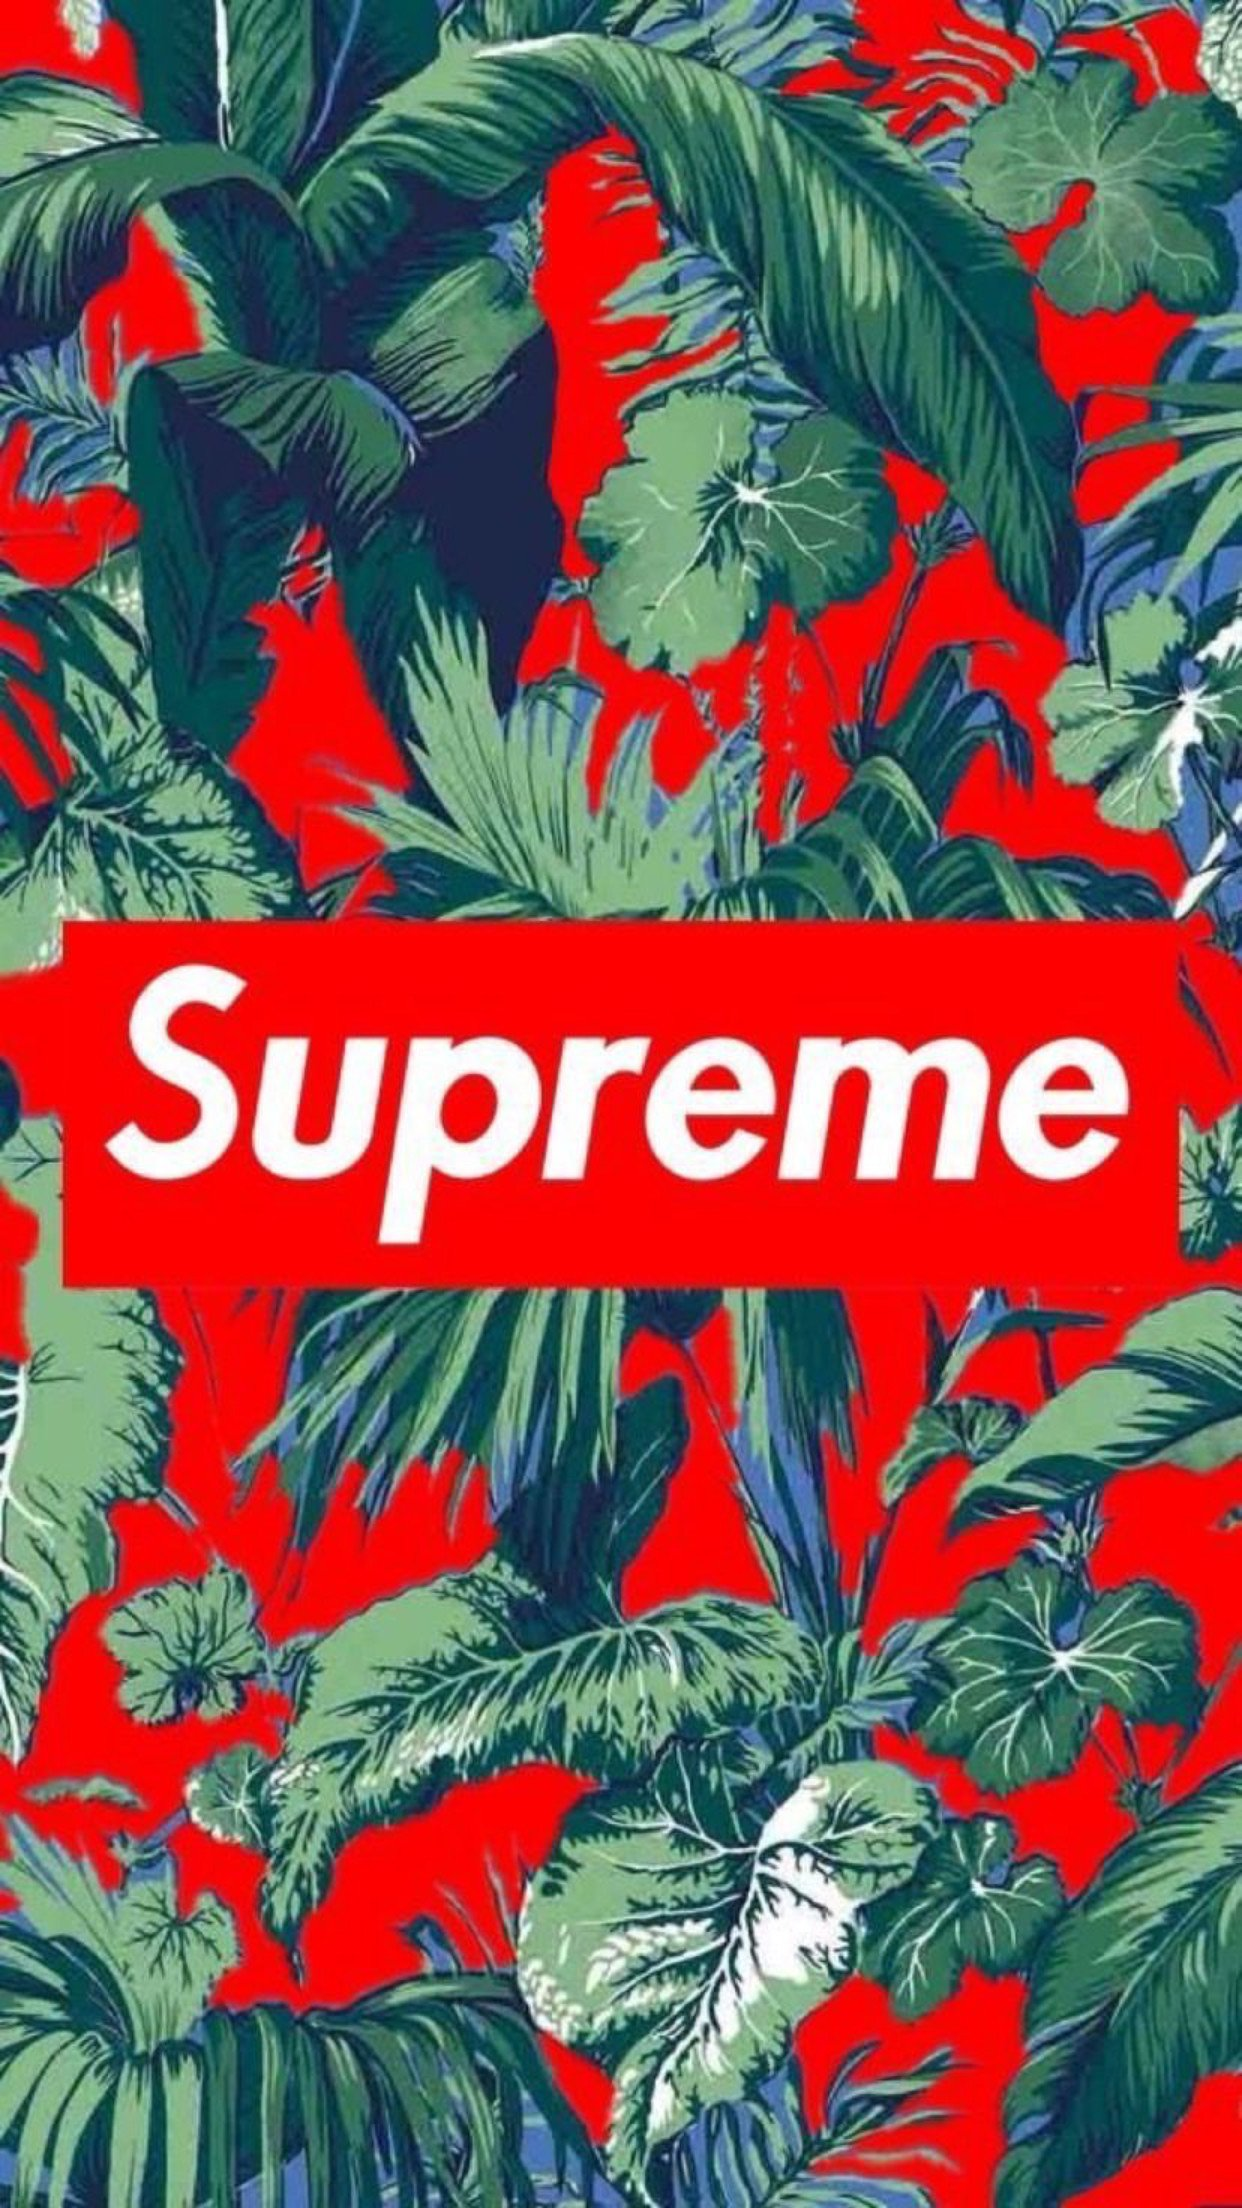 Free Download 83 Supreme Wallpapers On Wallpaperplay 1242x2208